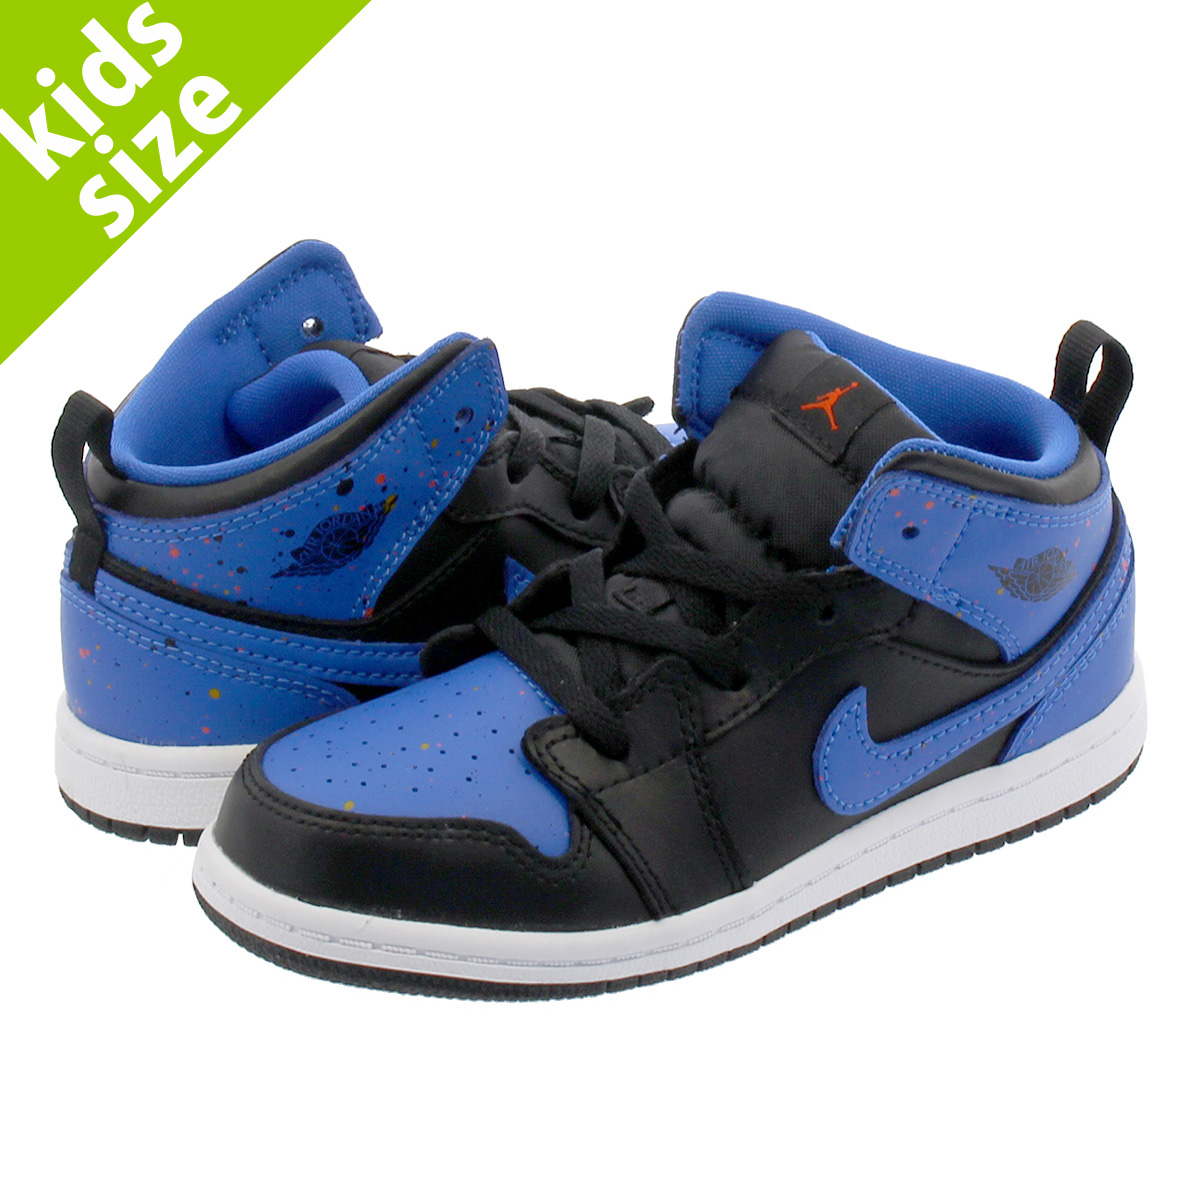 【ベビーサイズ】【8-16cm】 NIKE AIR JORDAN 1 MID BT ナイキ エア ジョーダン 1 ミッド BT BLACK/SIGNAL BLUE/TEAM ORANGE 640735-048